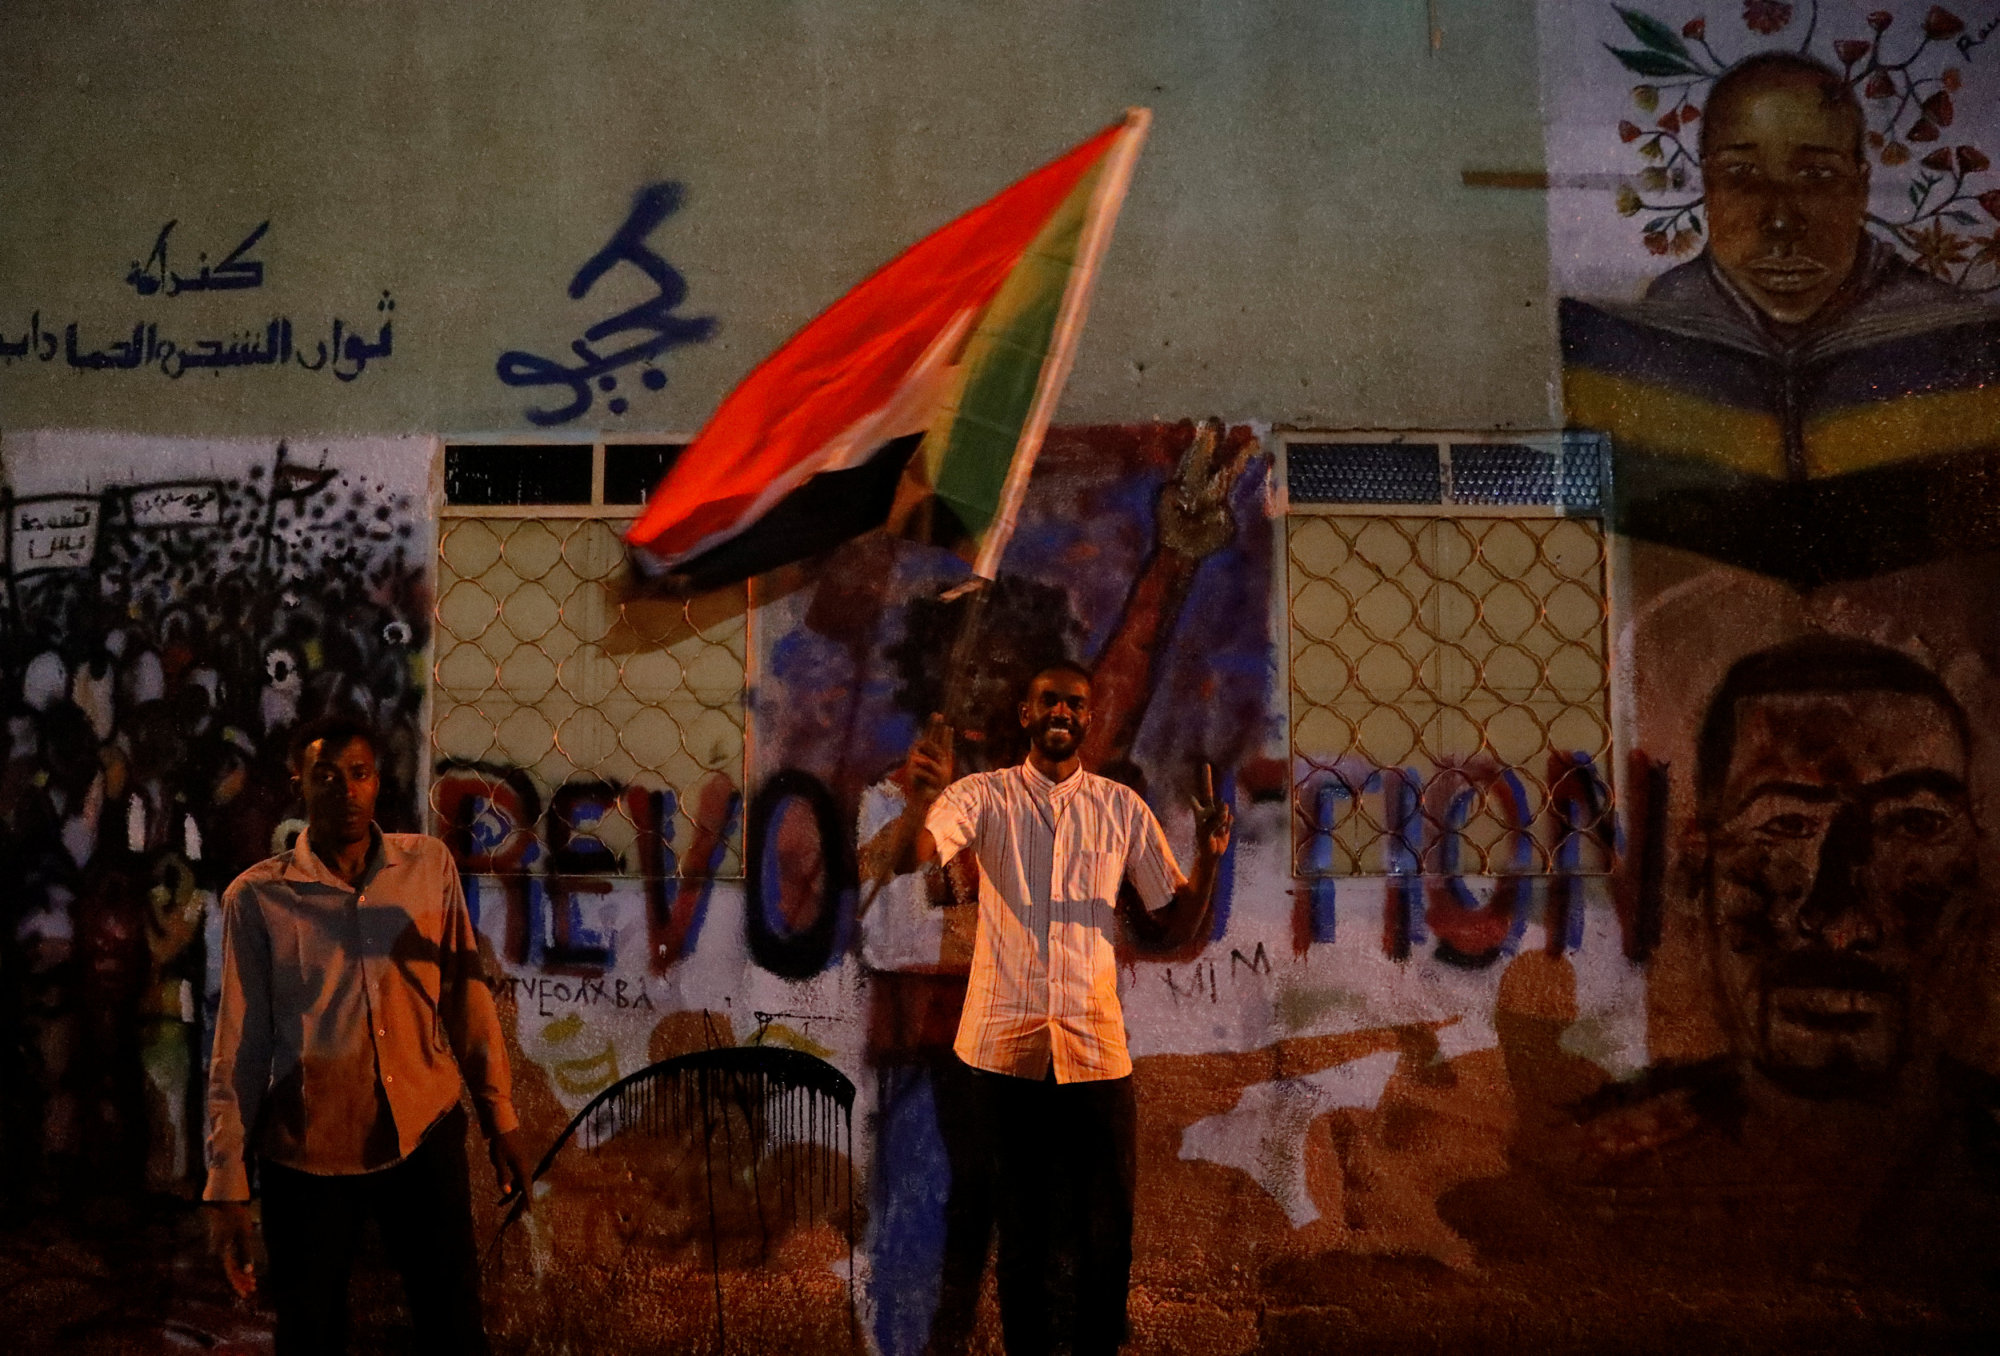 A Sudanese protester waves a national flag as he arrives a mass protest in front of the Defense Ministry in Khartoum on Sunday. | REUTERS